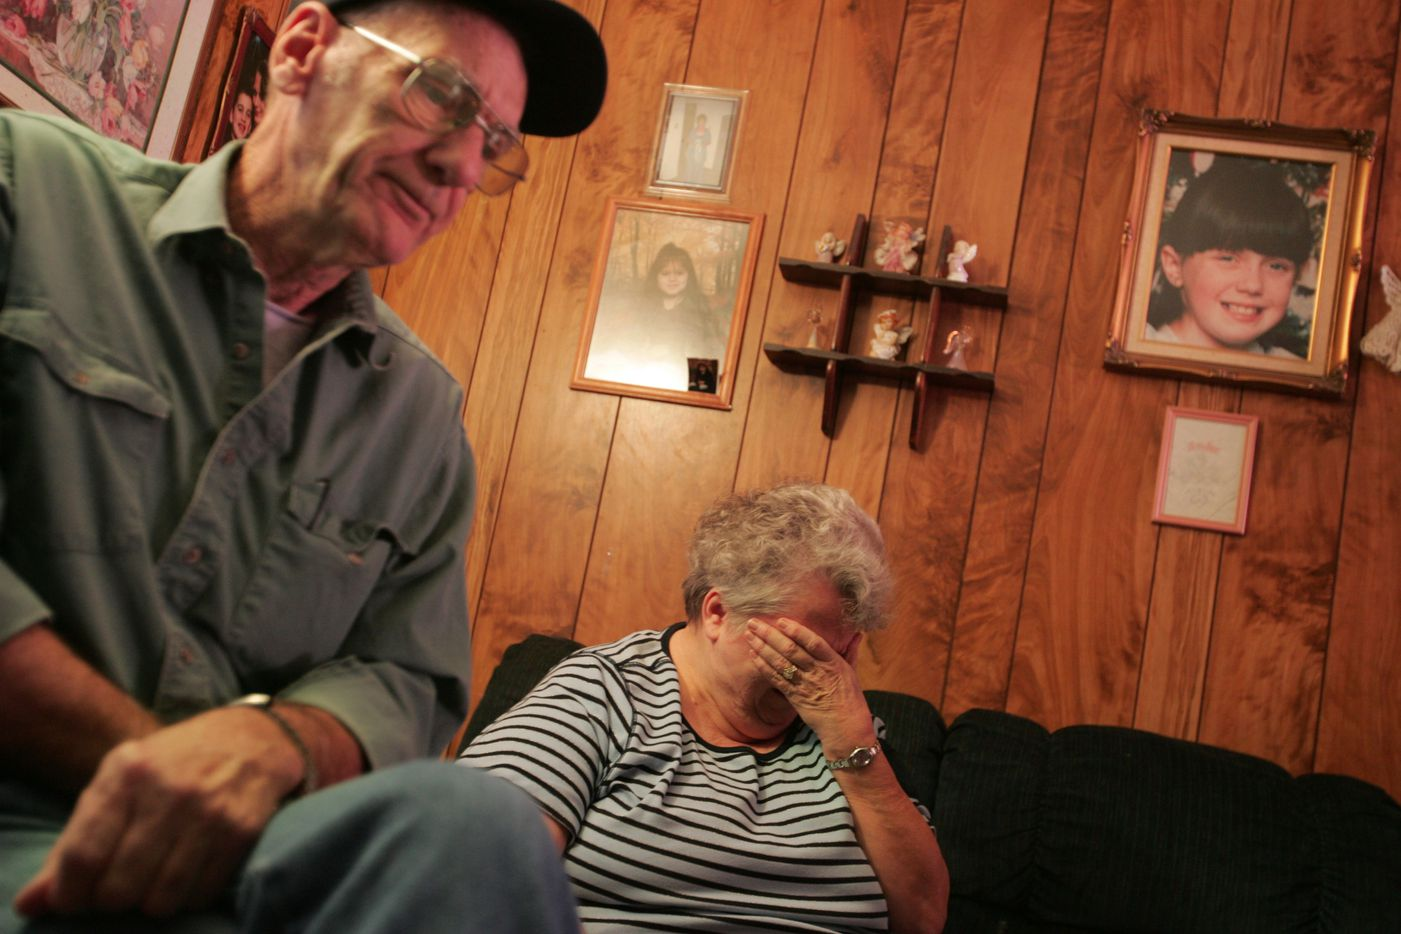 Jimmie and Glenda Whitson, grandparents of Amber Hagerman, reflect Jan. 9, 2006 on Amber's abduction and murder ten years earlier, while at their home in Arlington.